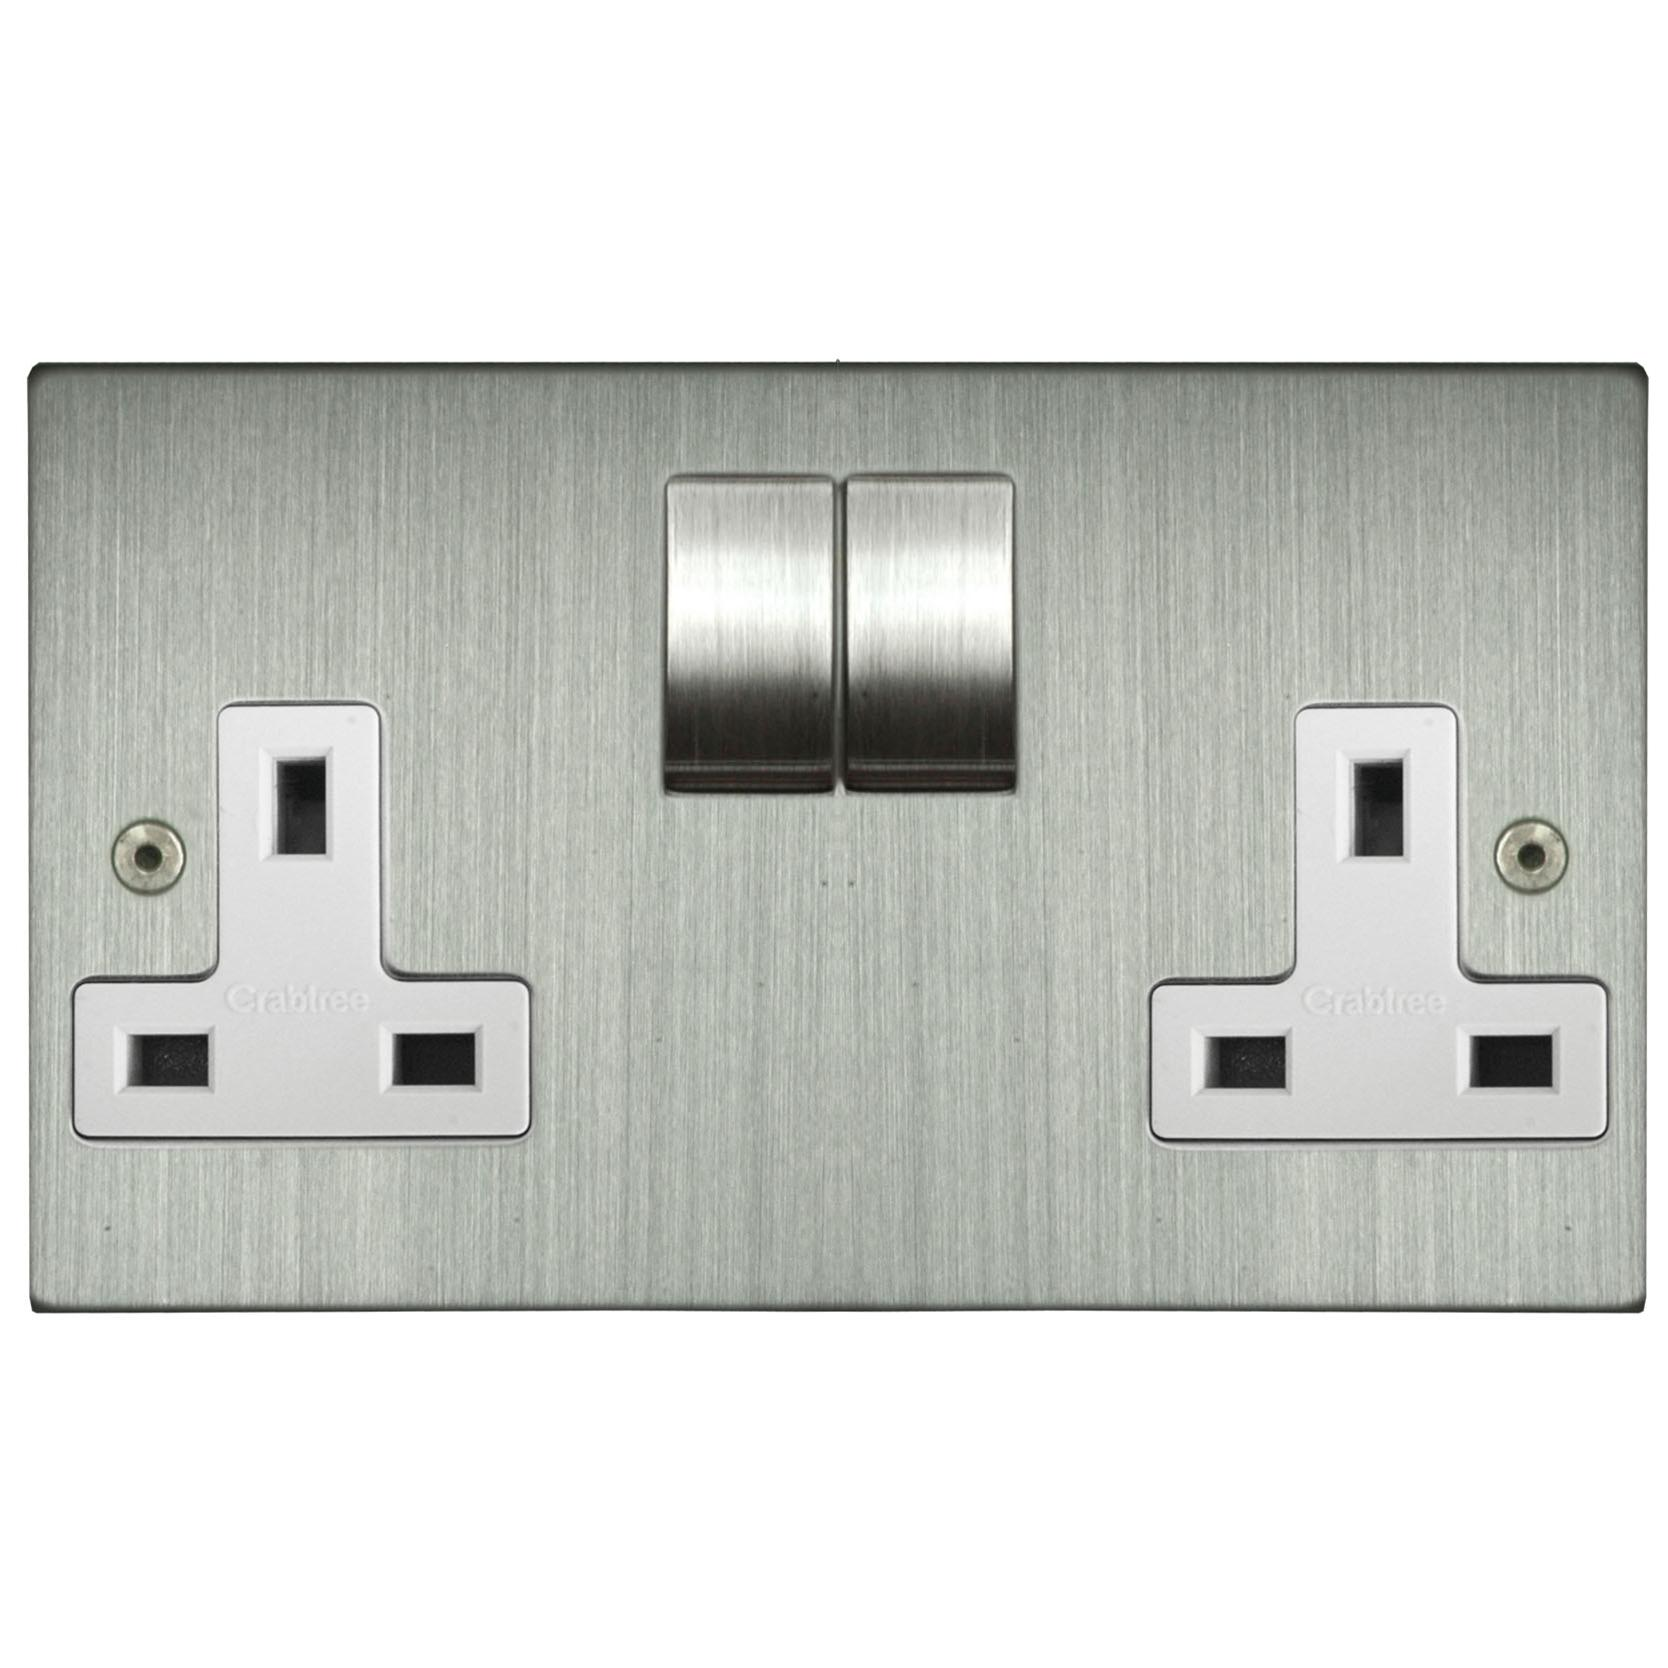 Wall Socket 2 Gang 13 Amp Switched Outlet Satin Nickel Wiring Cooker Switch